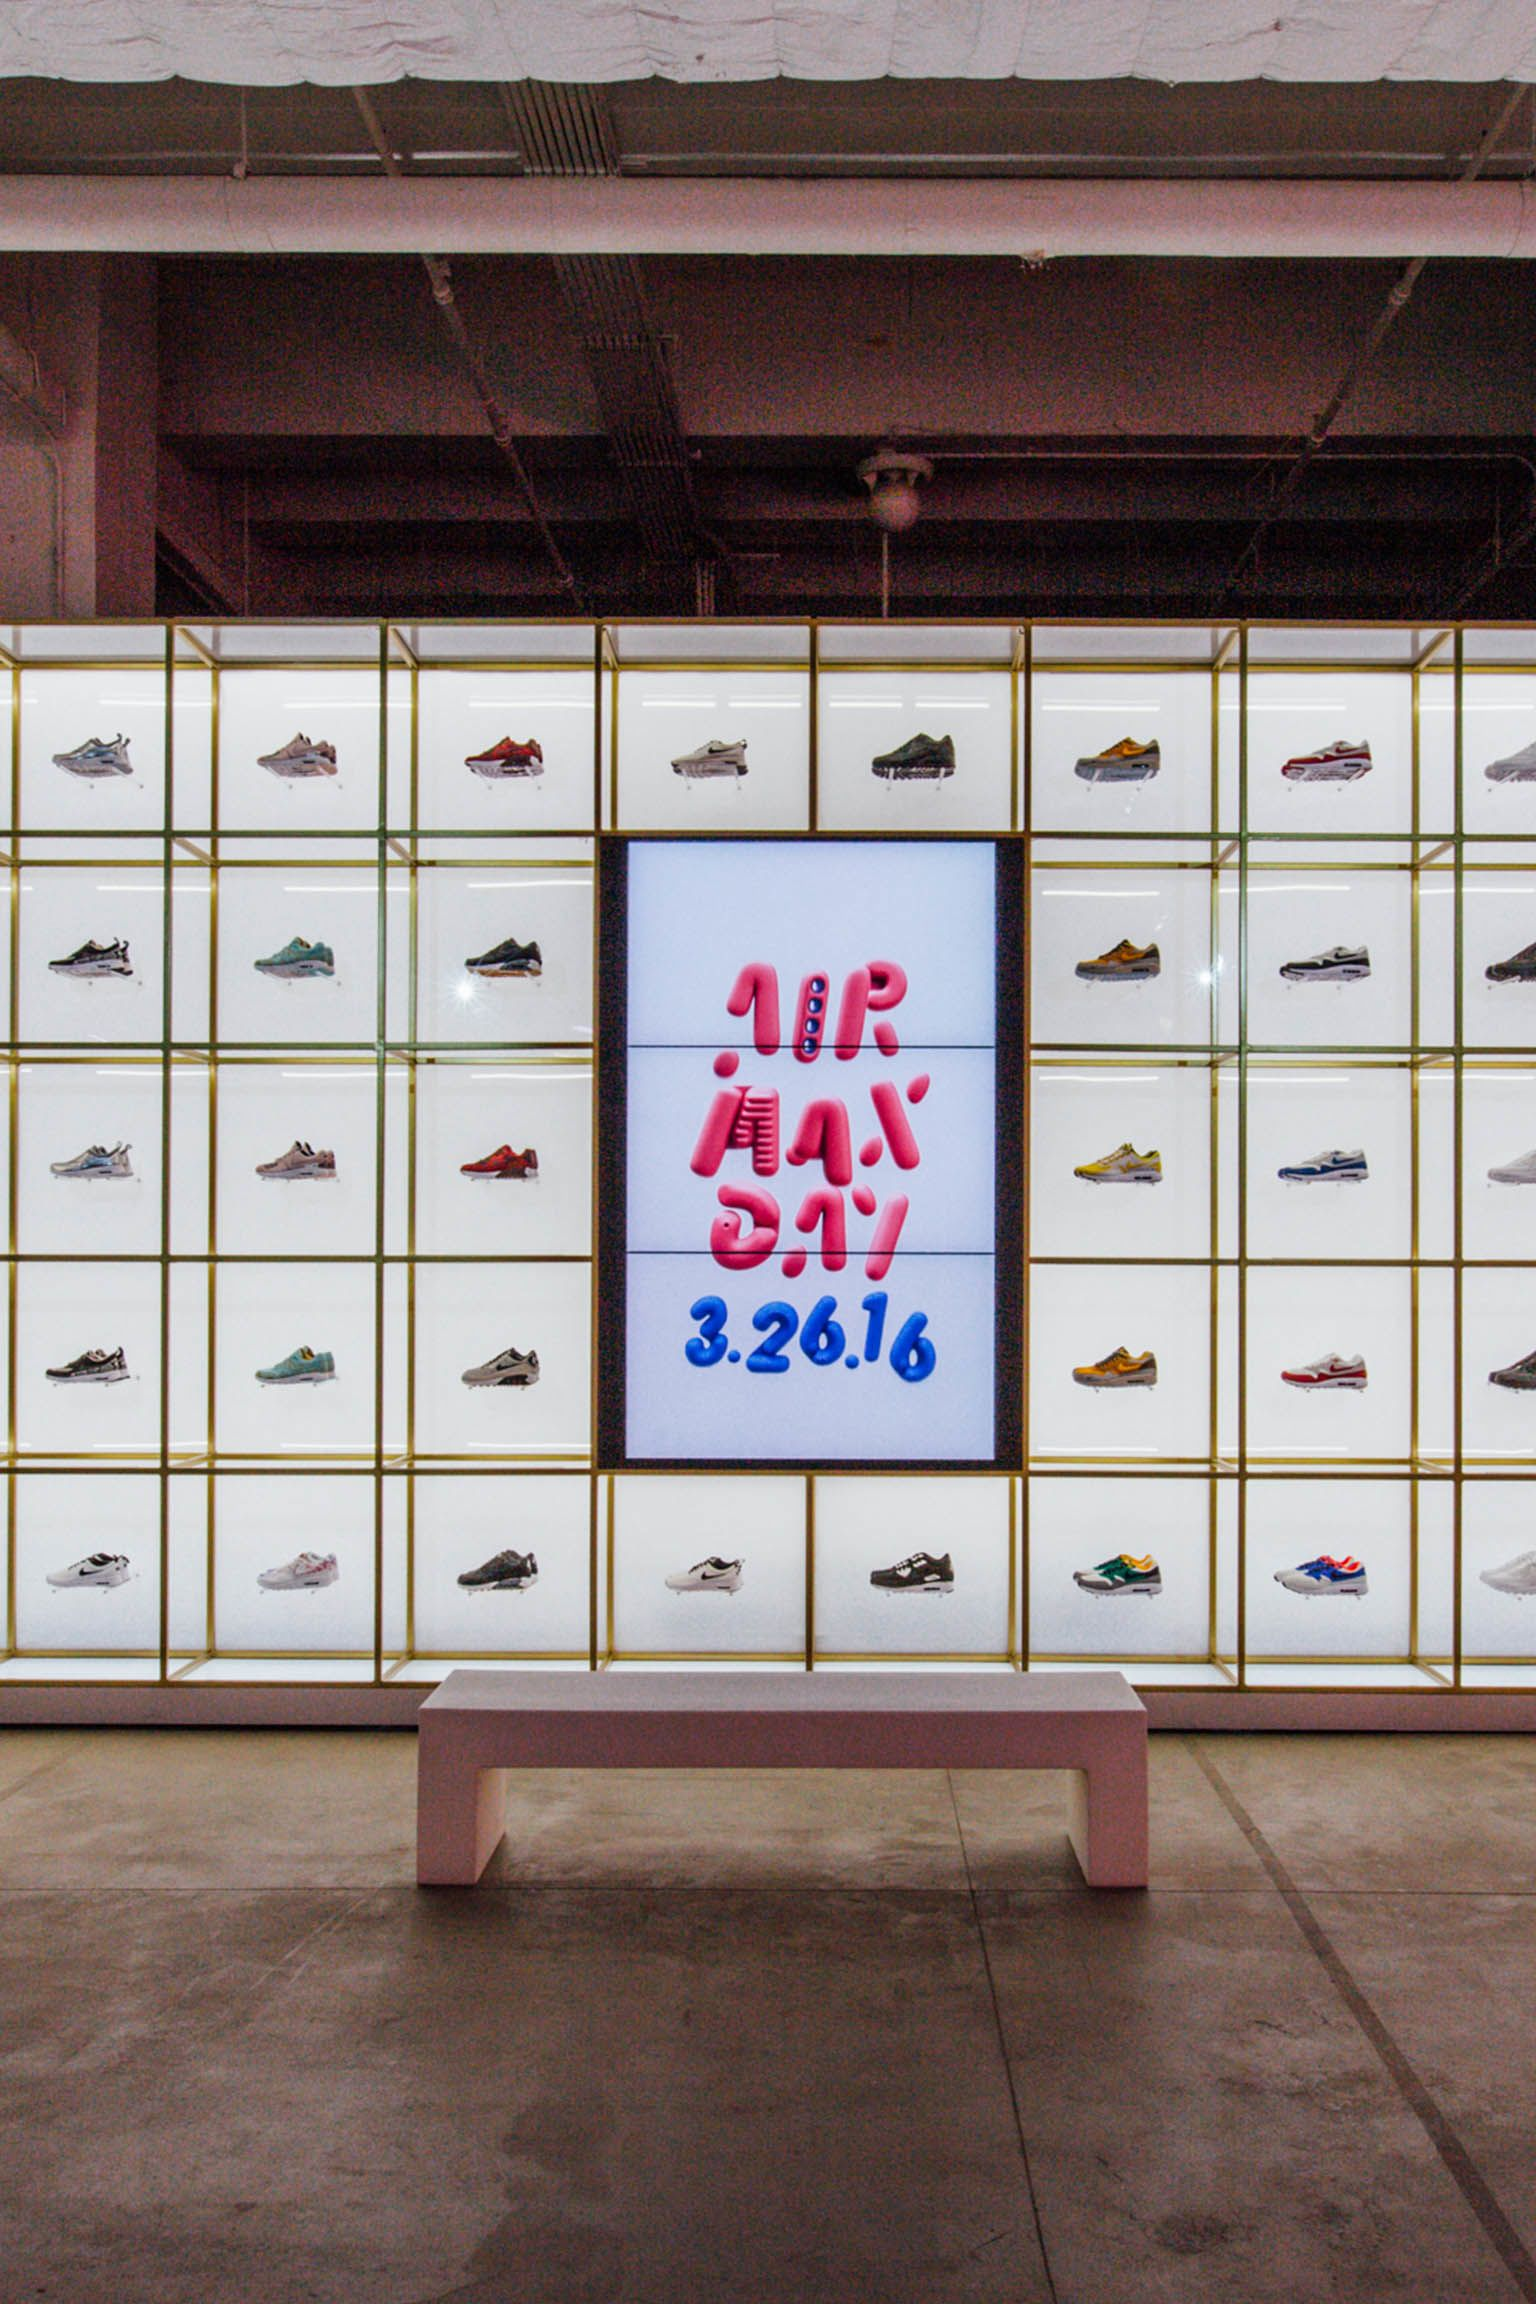 Nike Air Max Con NYC: First Look. Nike SNKRS